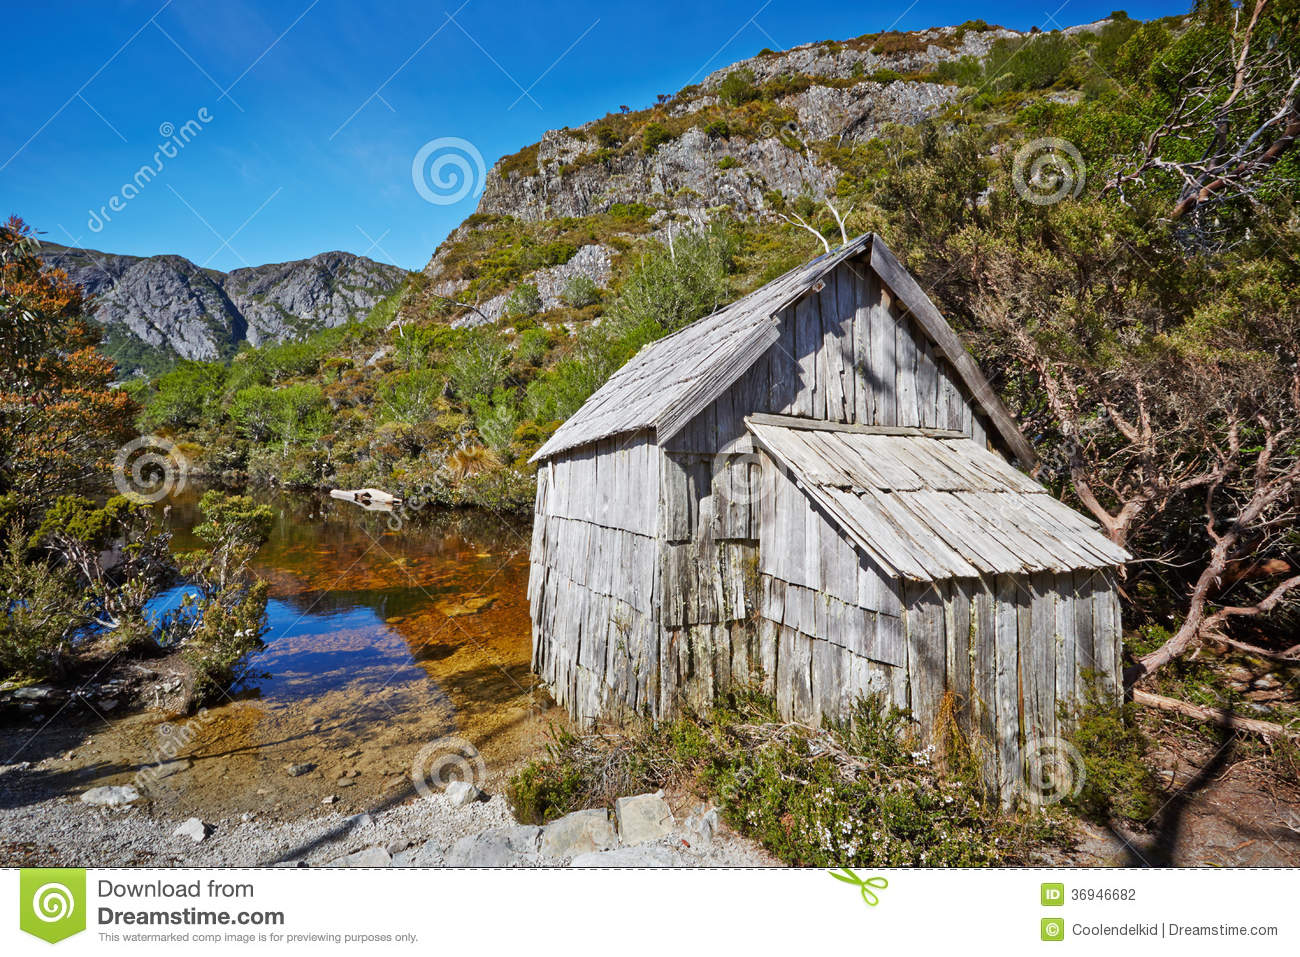 wooden hut near mountain - photo #10